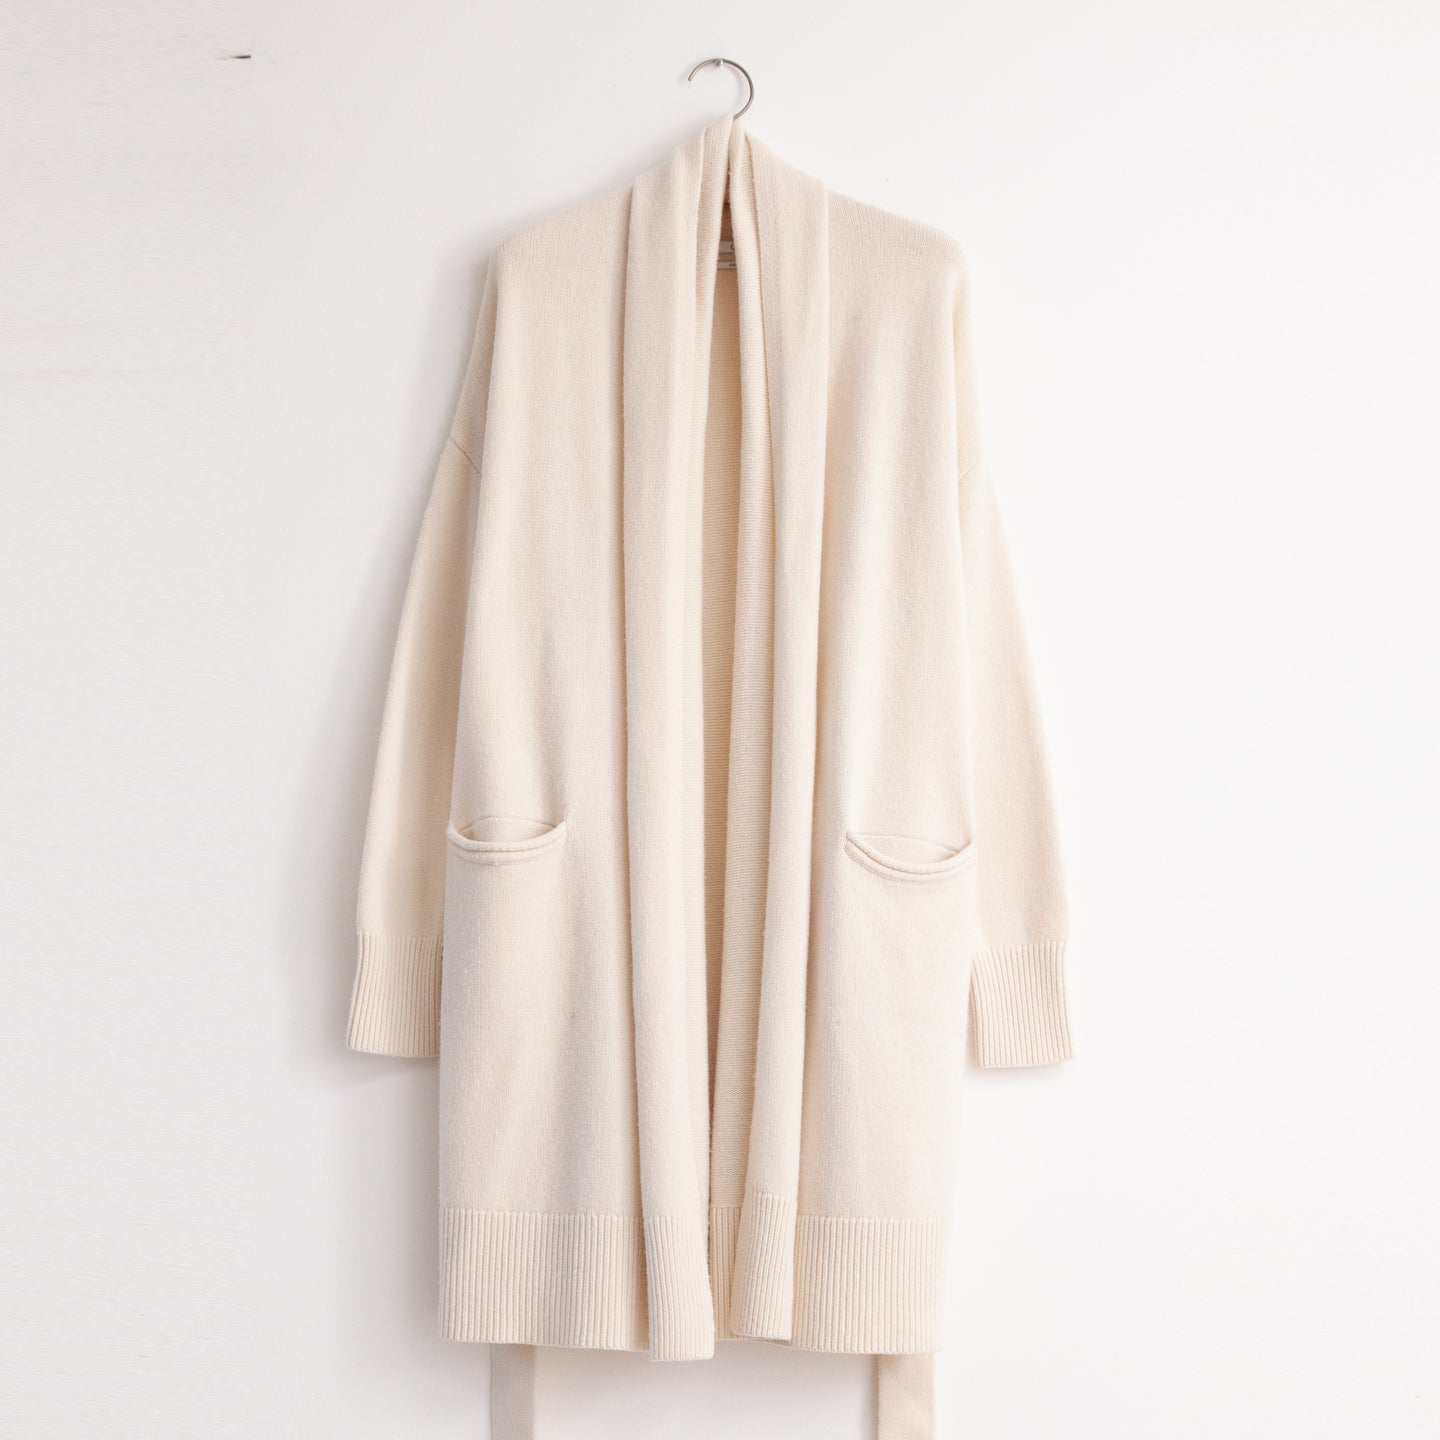 CO - Shawl collar belted cardigan with pockets in ivory wool cashmere